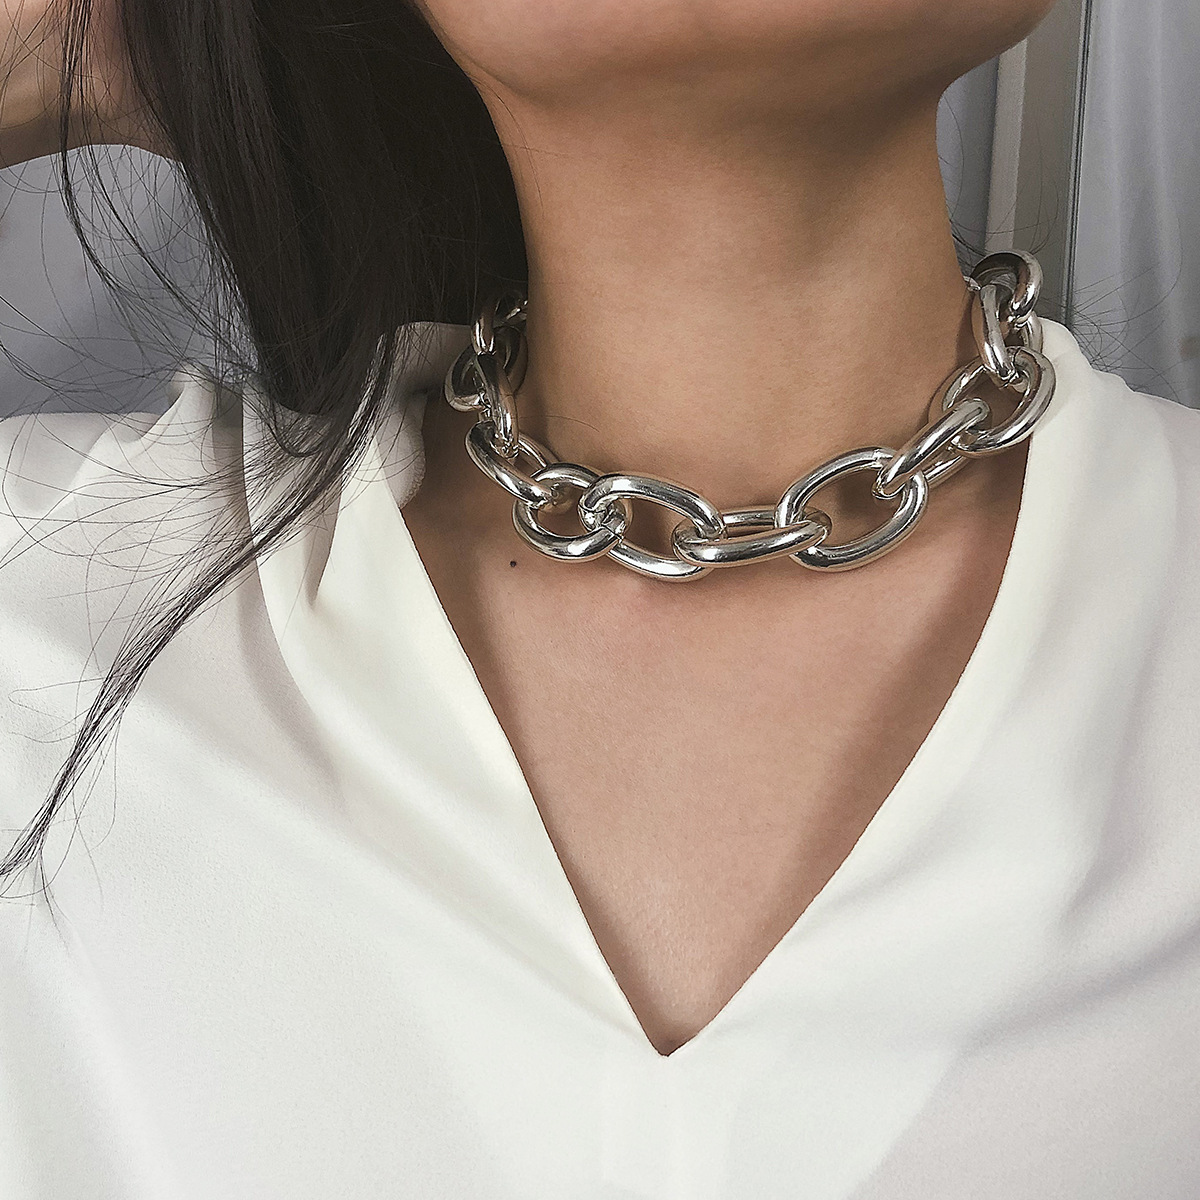 KingDeng Link Chain Retro Exaggerated Punk Metal Item Necklace Female Simple Chain Geometric Personality Necklace Shackles New